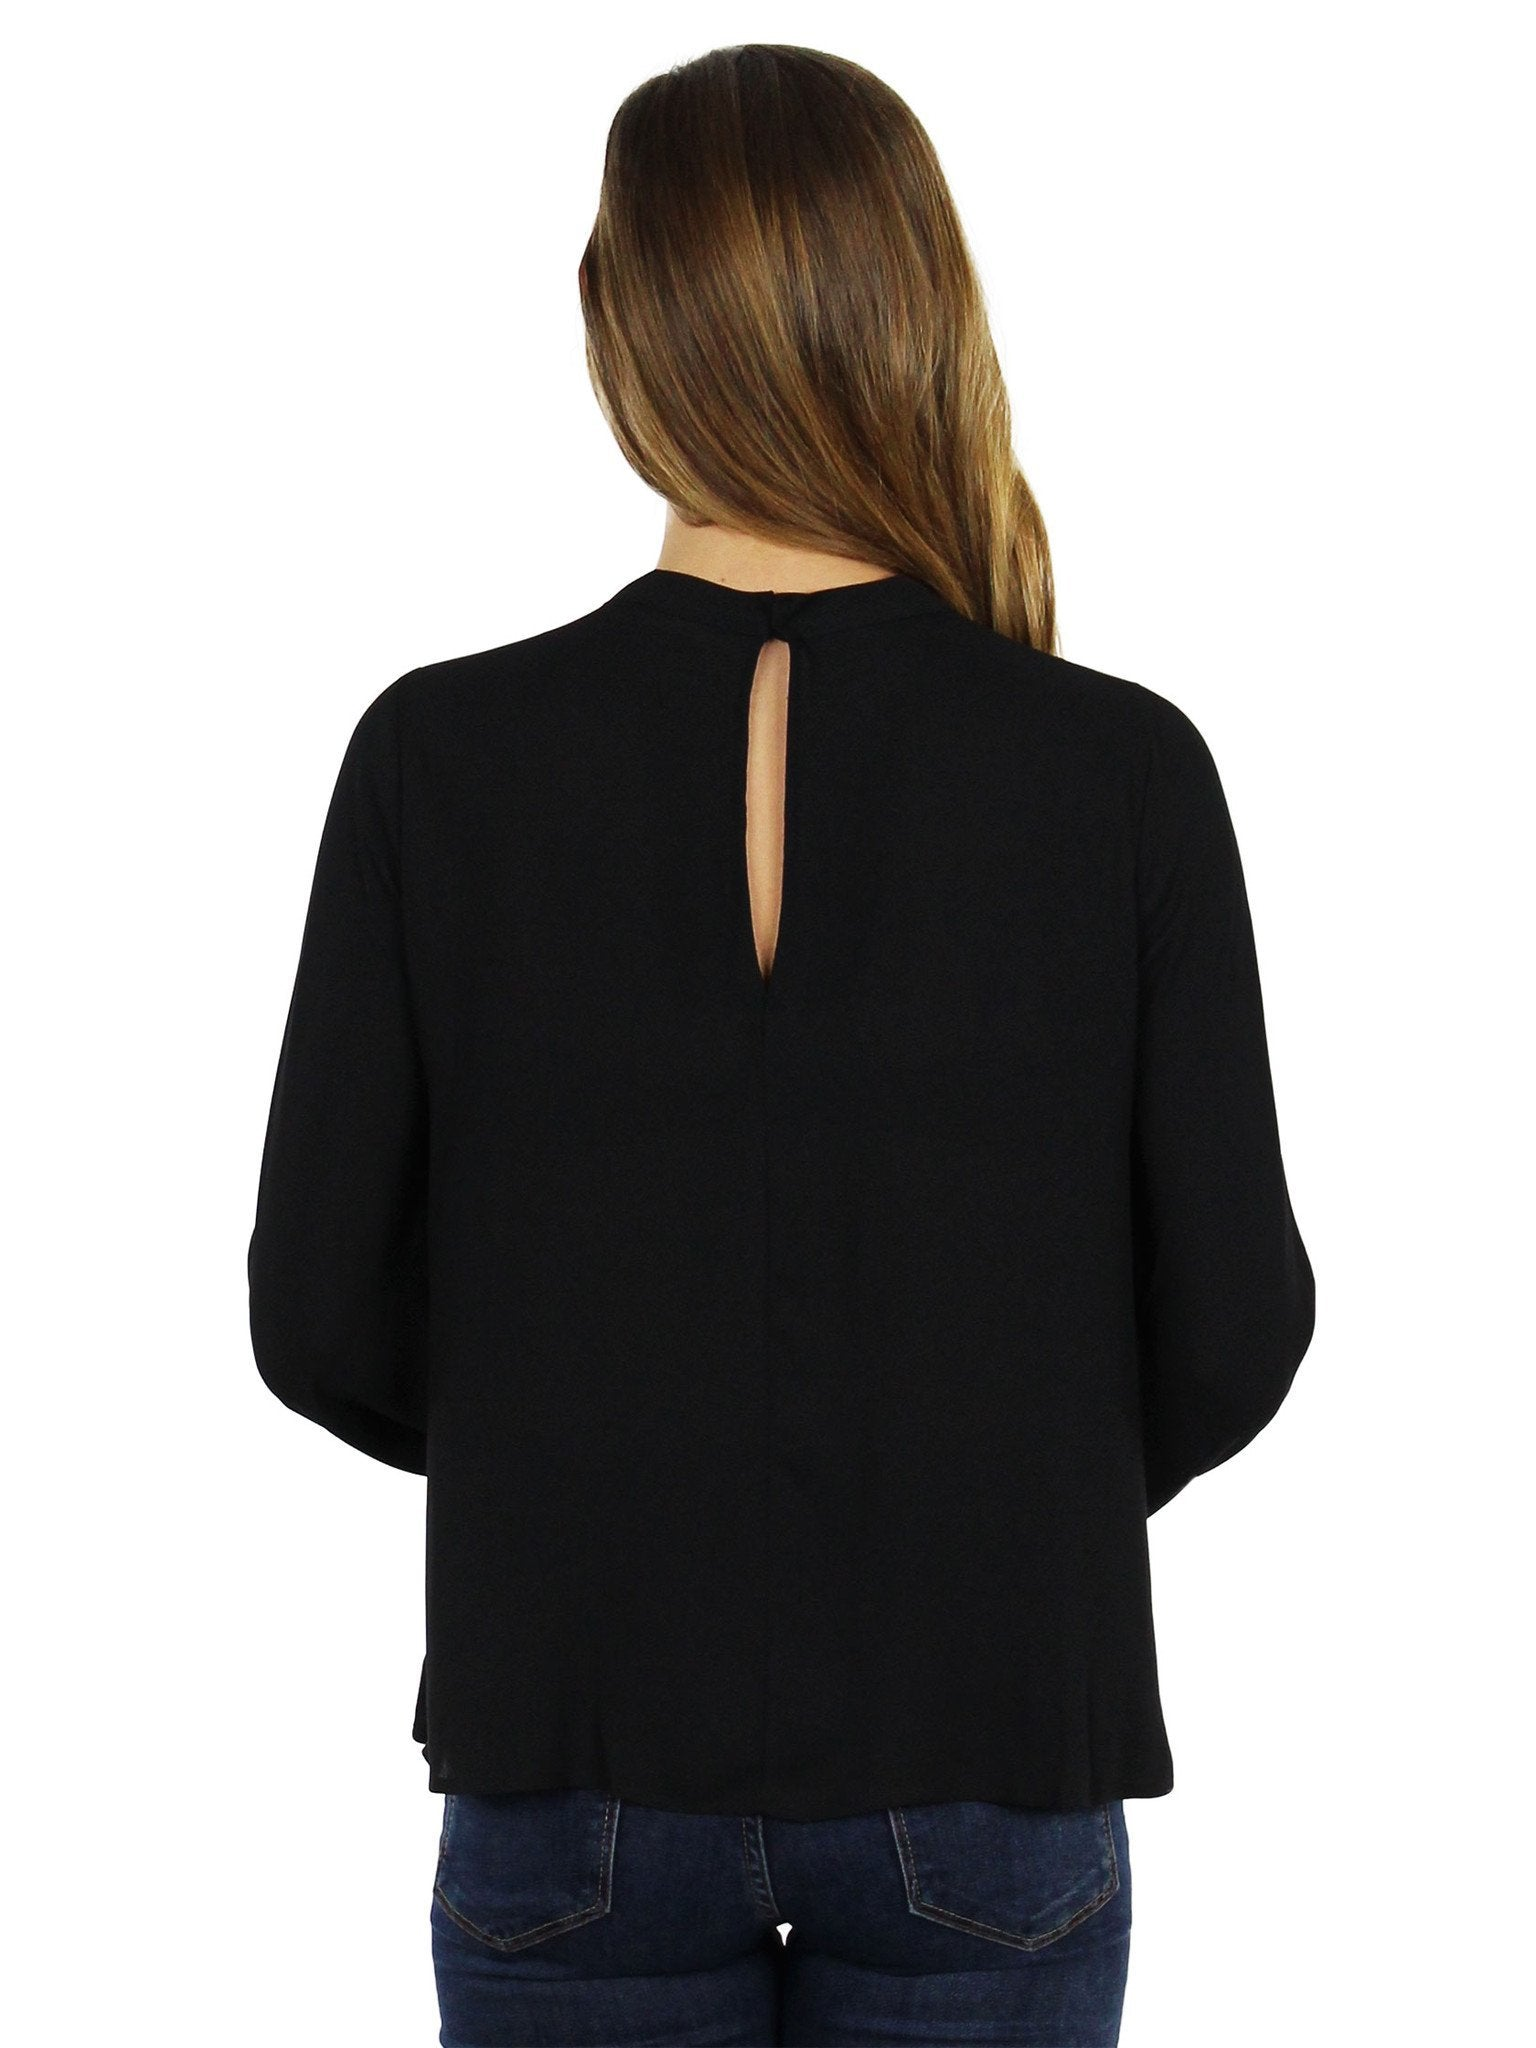 Women wearing a top rental from Lush called Cut Out Long Sleeve Blouse